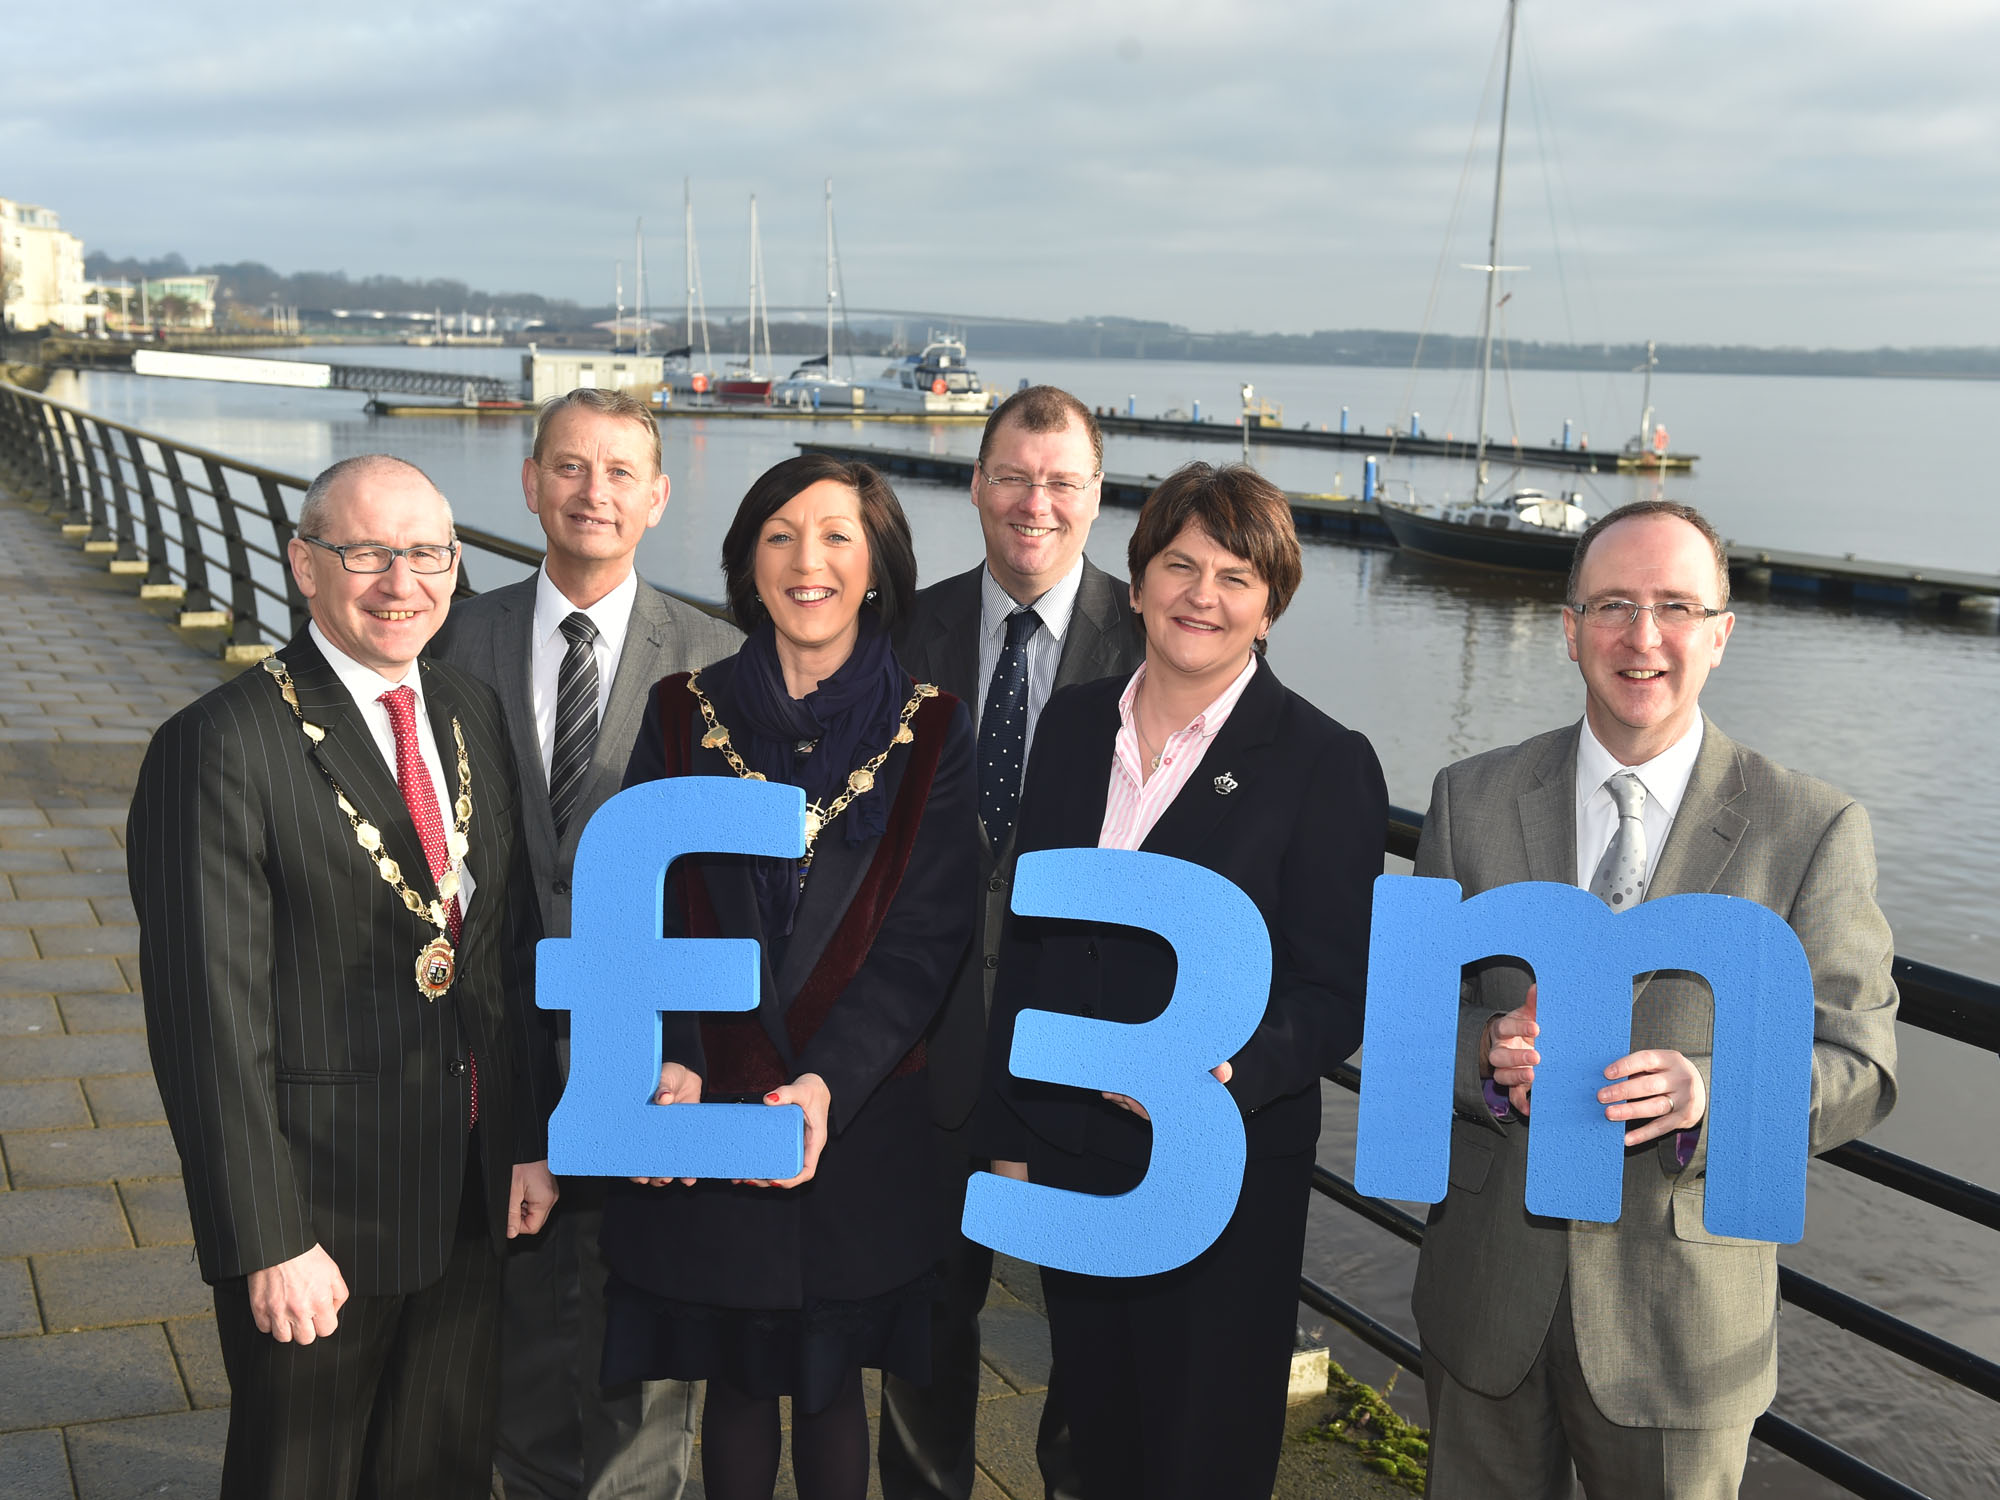 derry-jobs-and-investment-announcement-7-businesses-21-01-2015.jpg